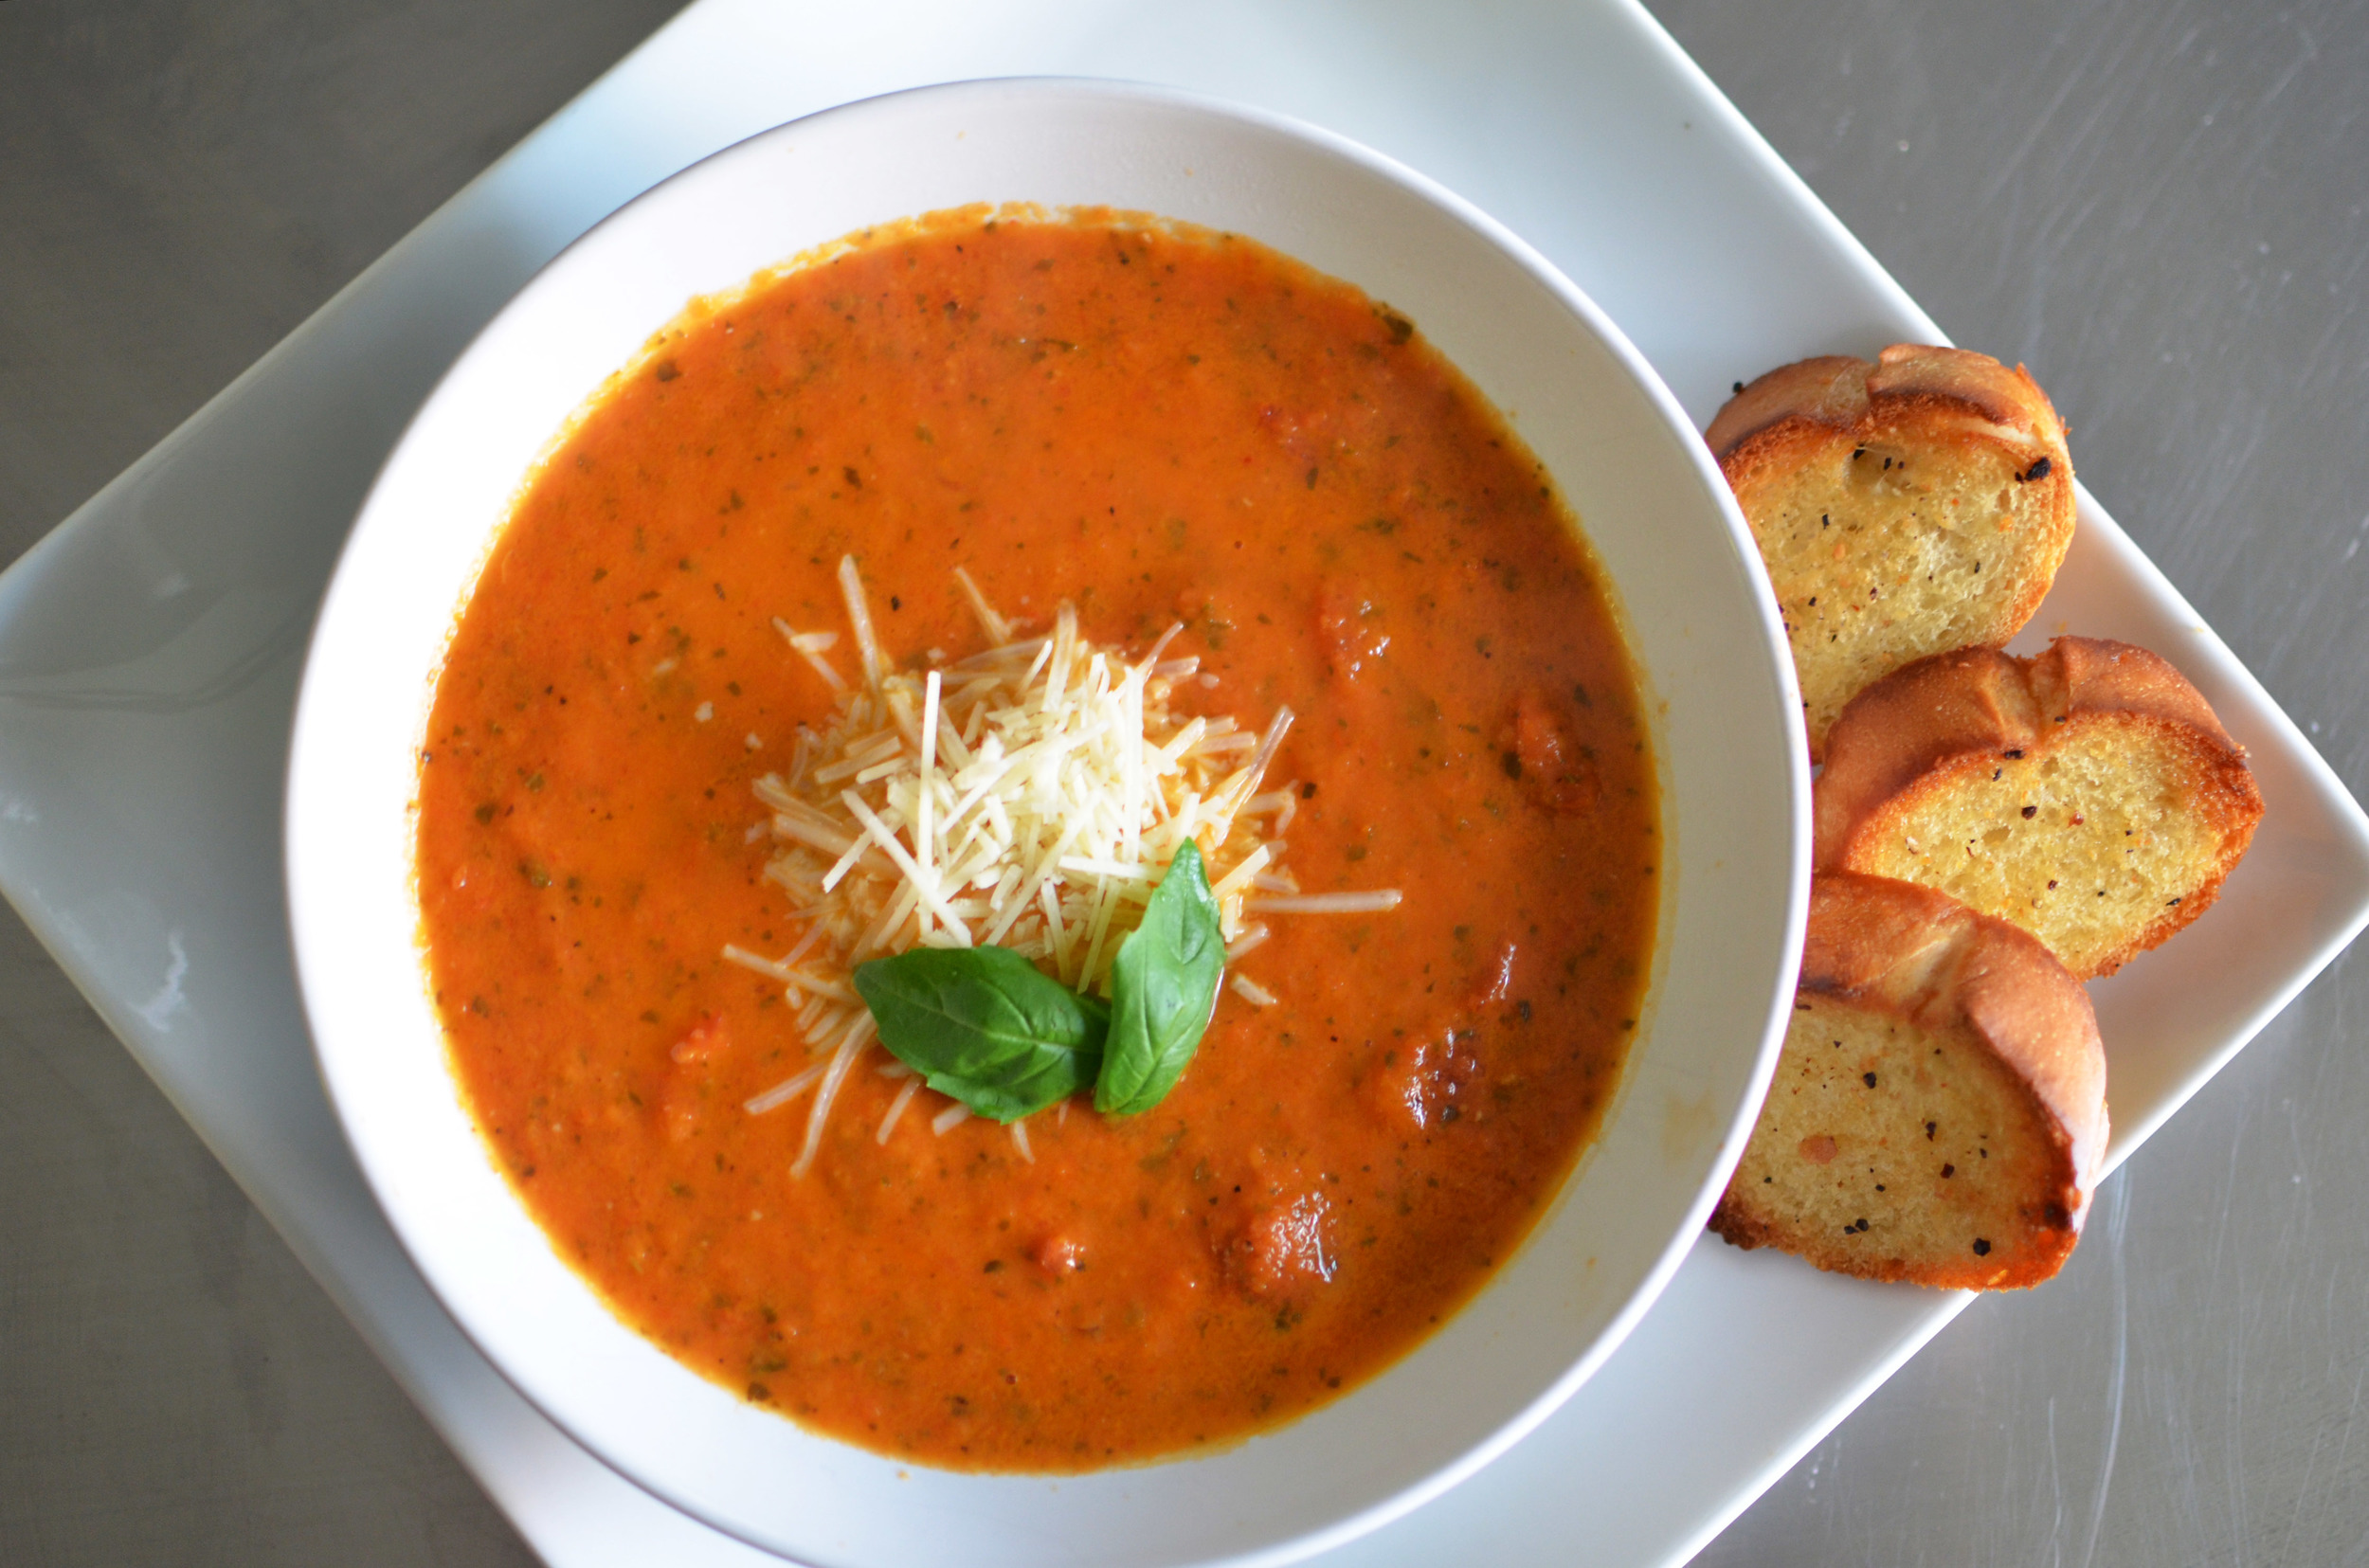 tomato-basil soup recipe (ina garten/chrissy teigen) — the glossier